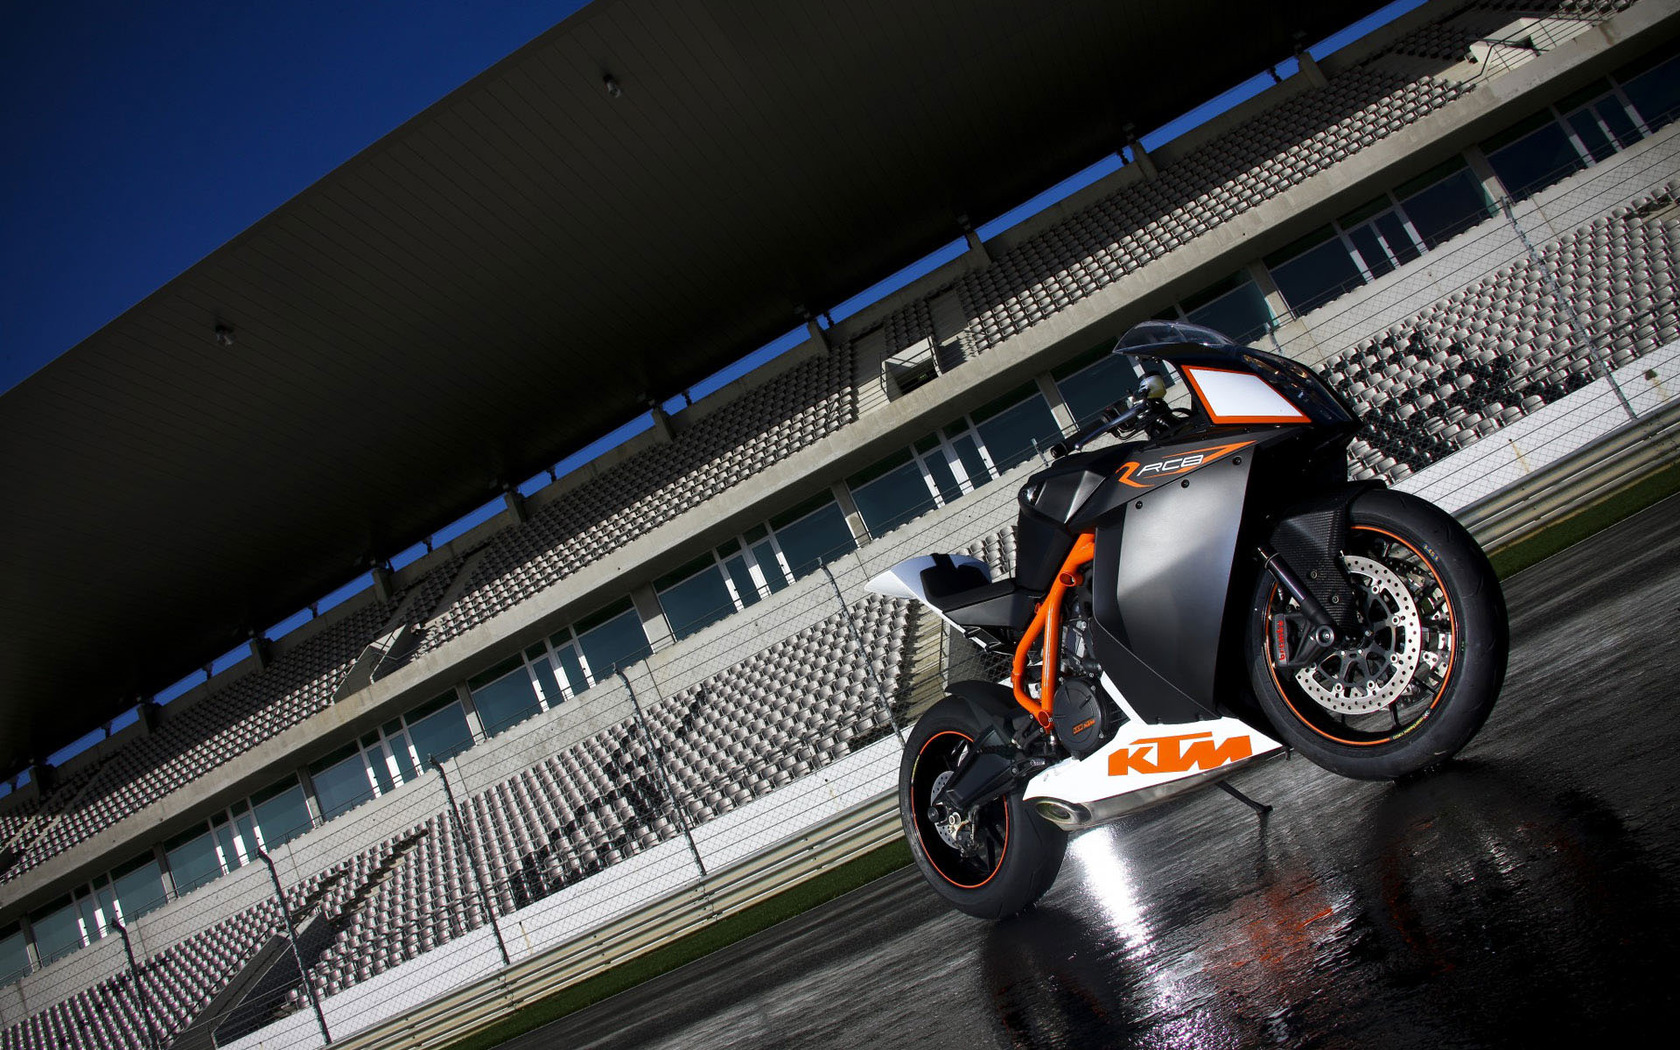 KTM RC8 wallpaper 5787 1680x1050